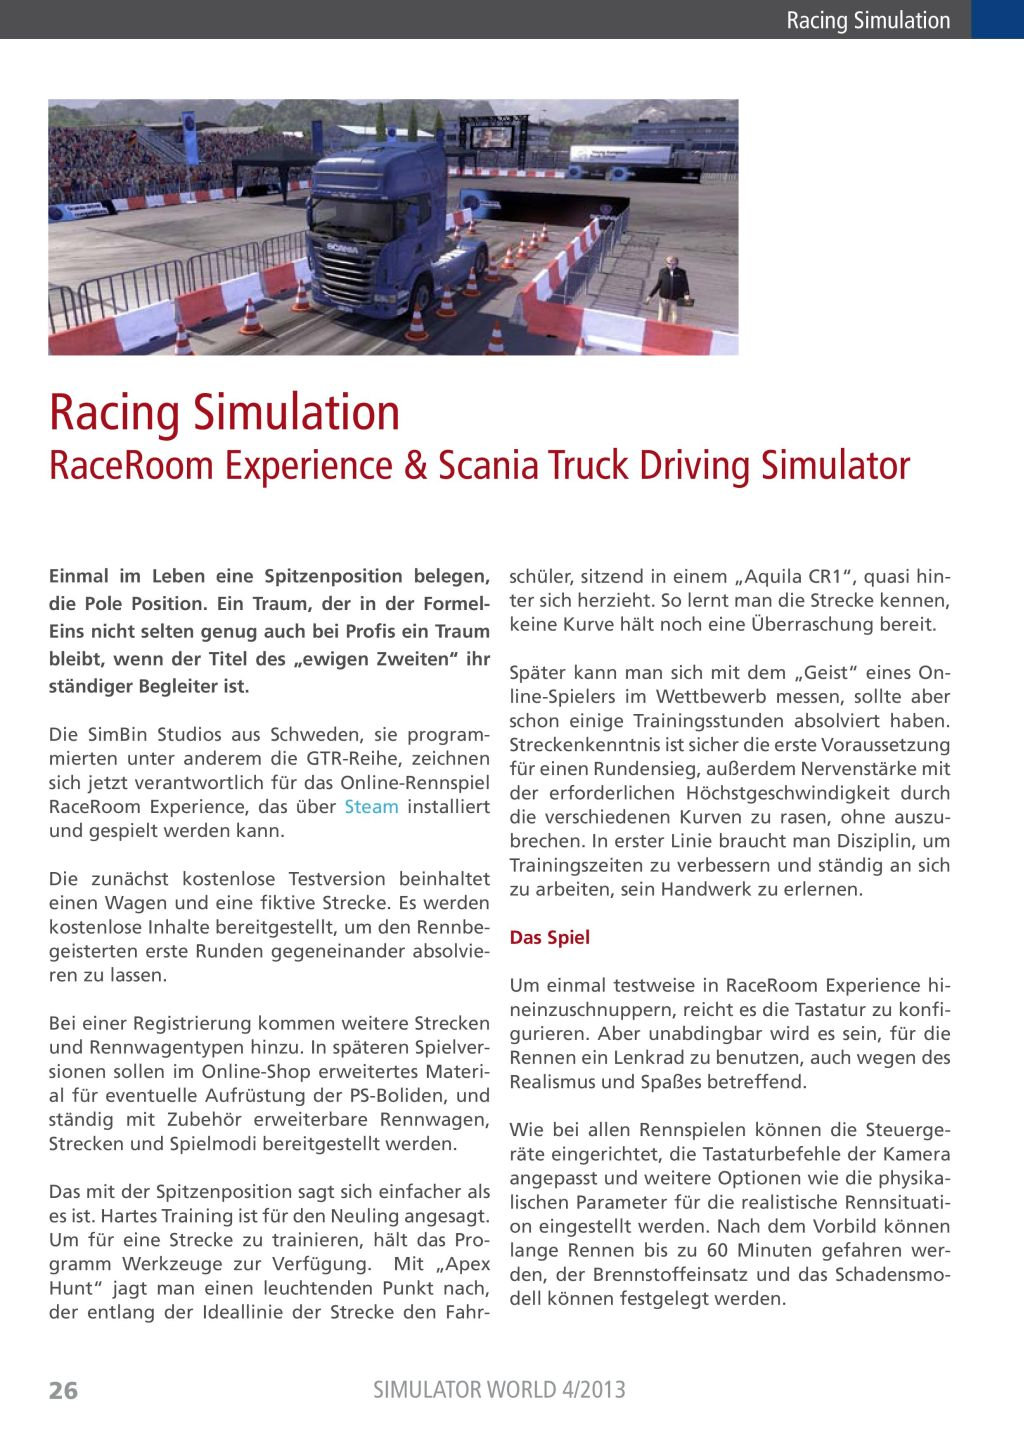 SIMULATOR WORLD 4-2013 DEUTSCH (PDF) (FREE)